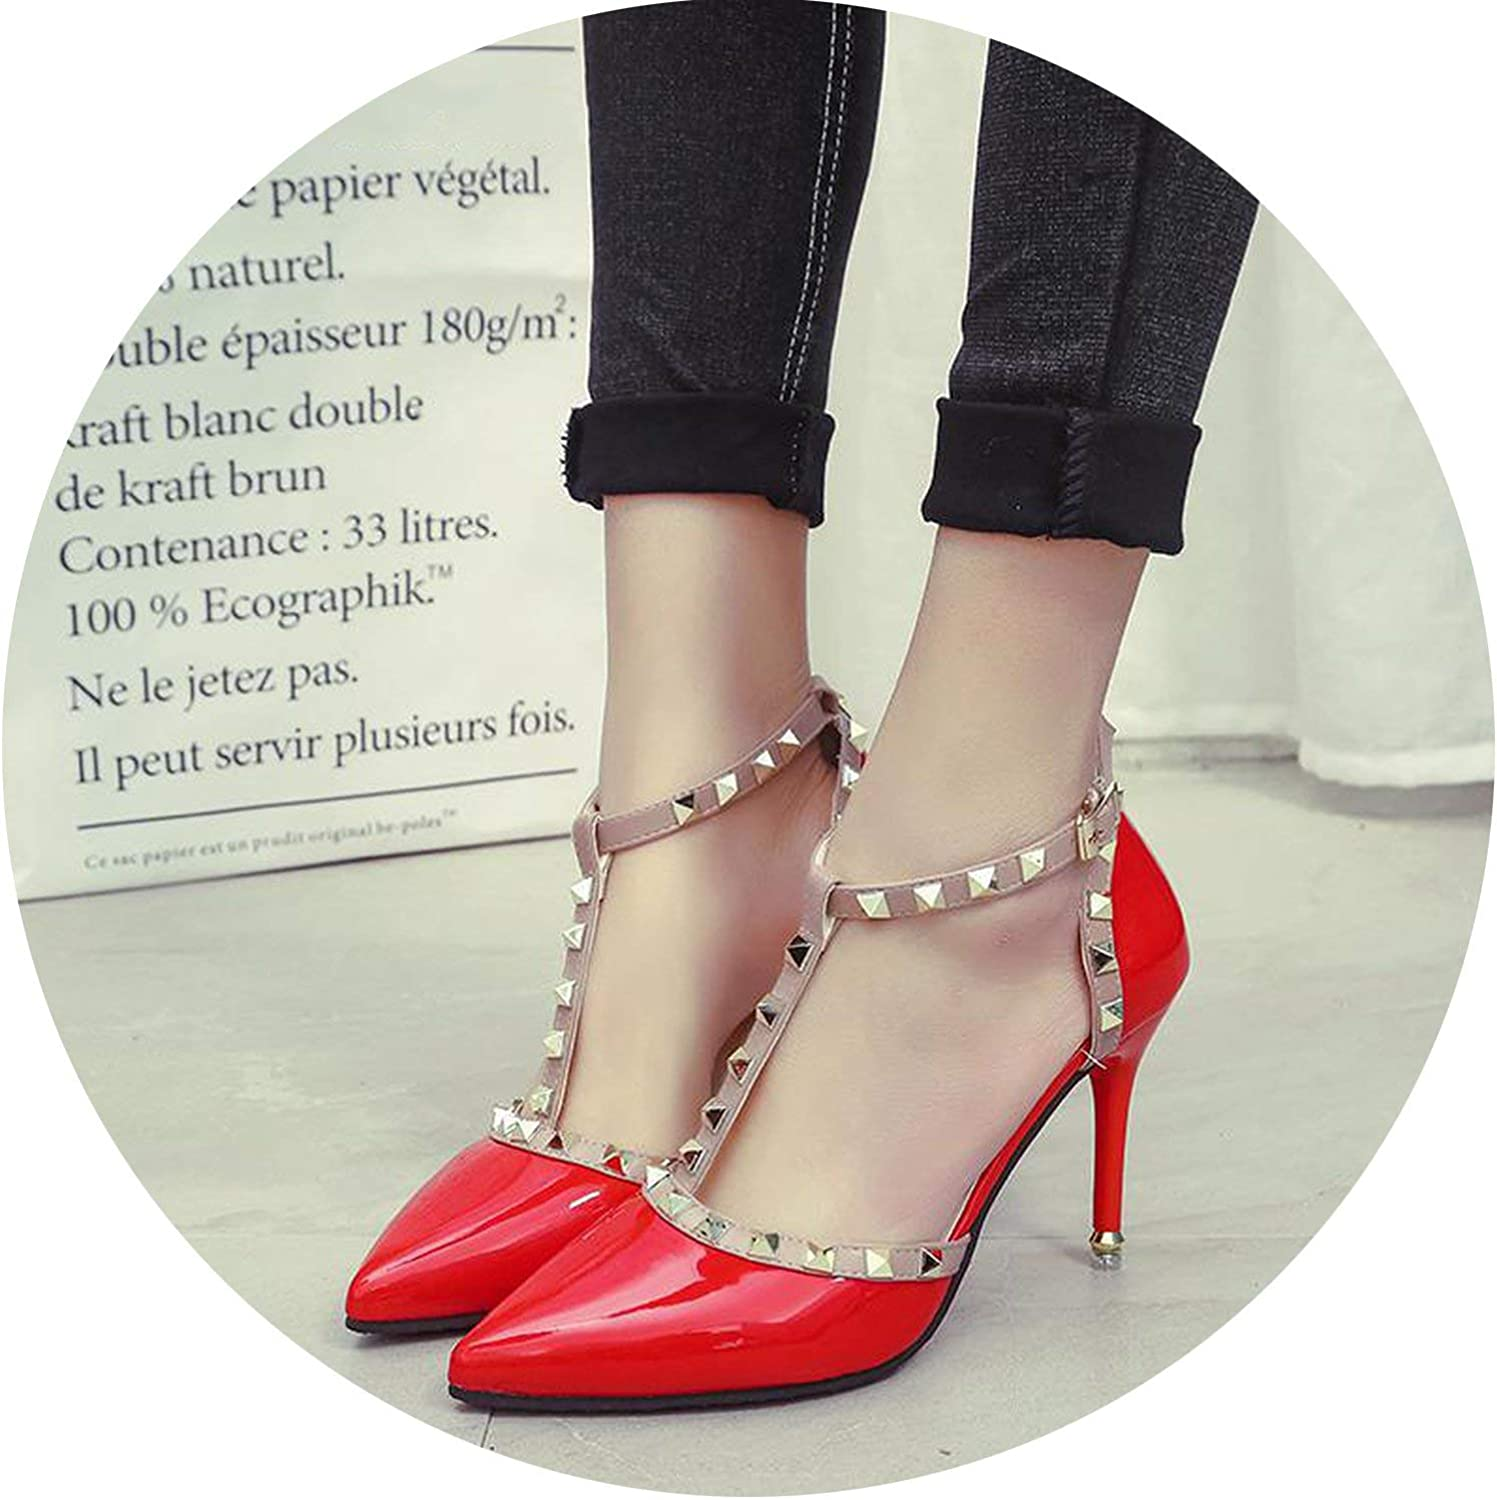 HANBINGPO New Women Pumps Summer Fashion Sexy Rivets Pointed Toe Wedding Party High Heeled shoes Woman Sandals shoes women,Red,4.5